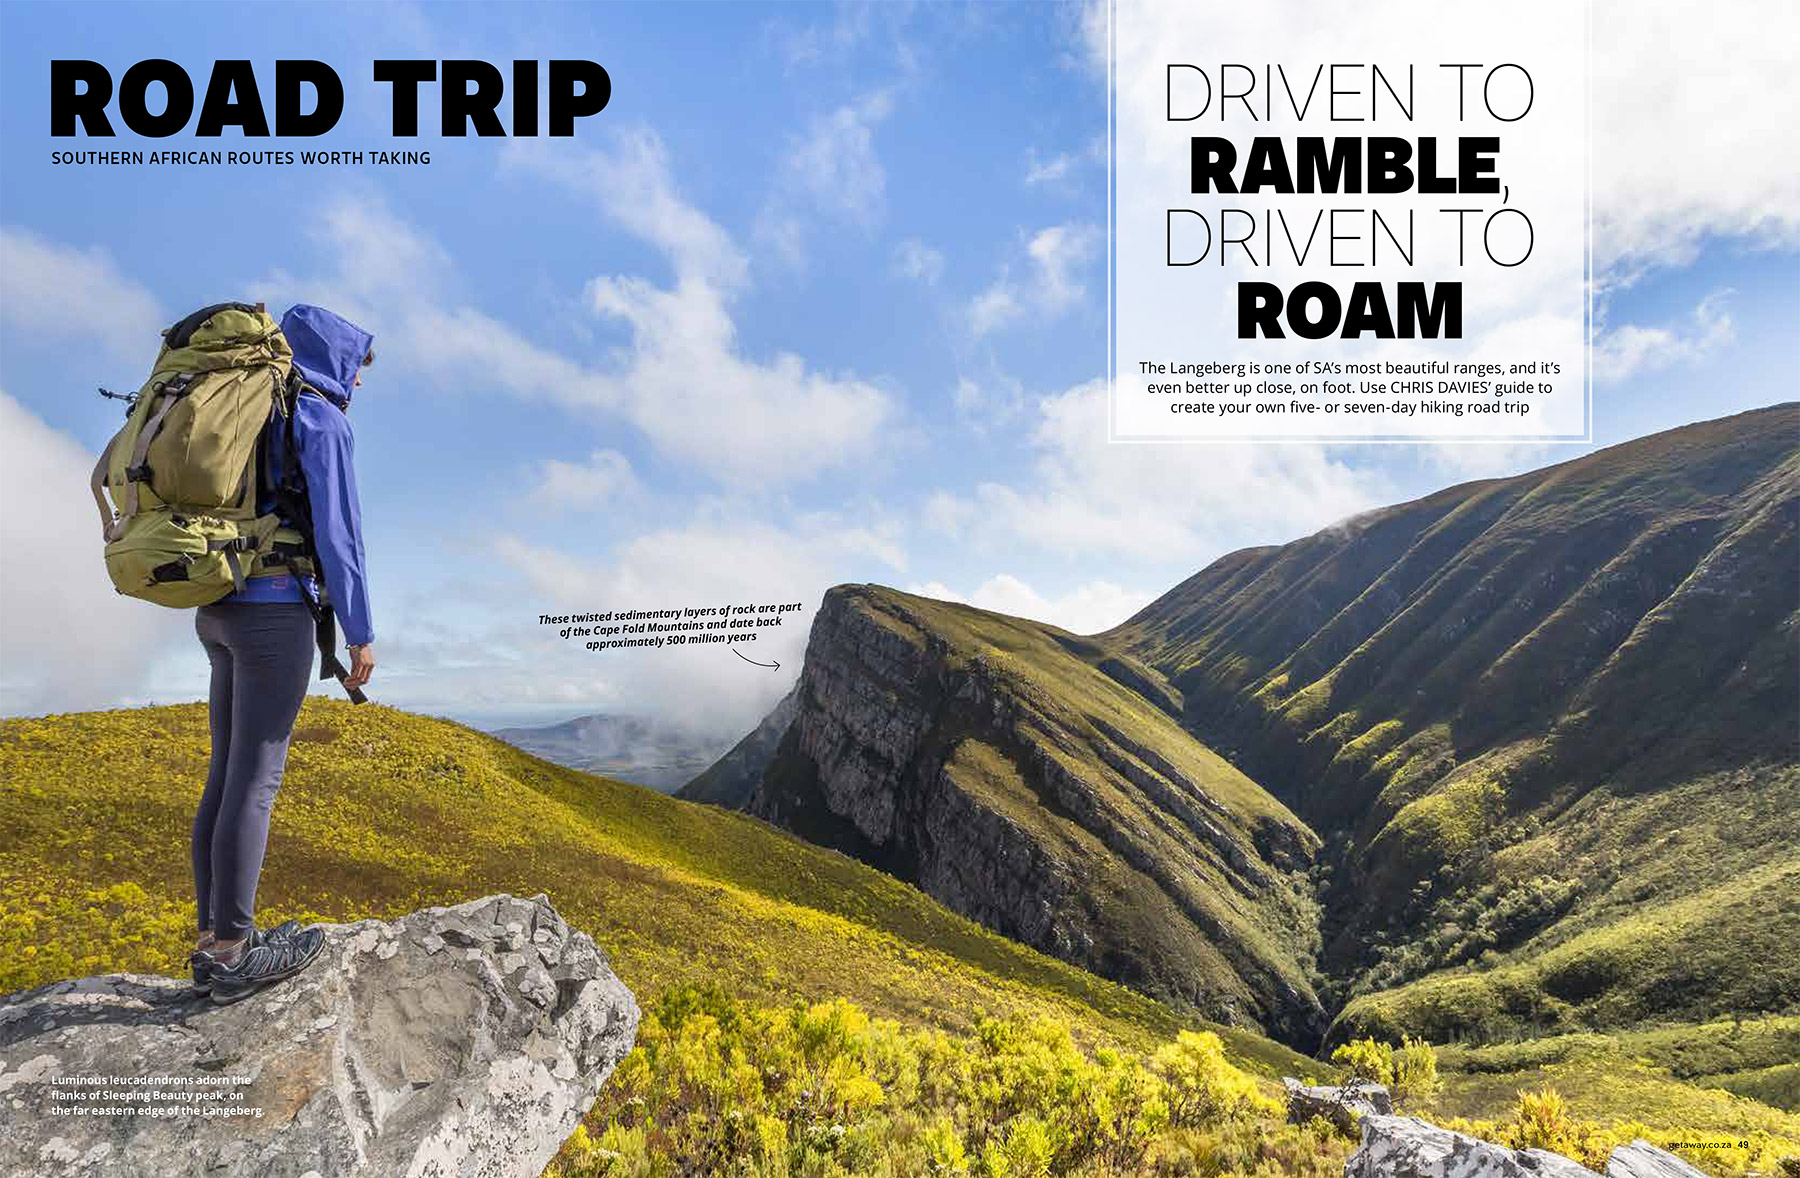 Getaway Magazine - Hiking the Langeberg Mountains watershed, which joins the southwestern Cape to South Africa's beautiful Garden Route.